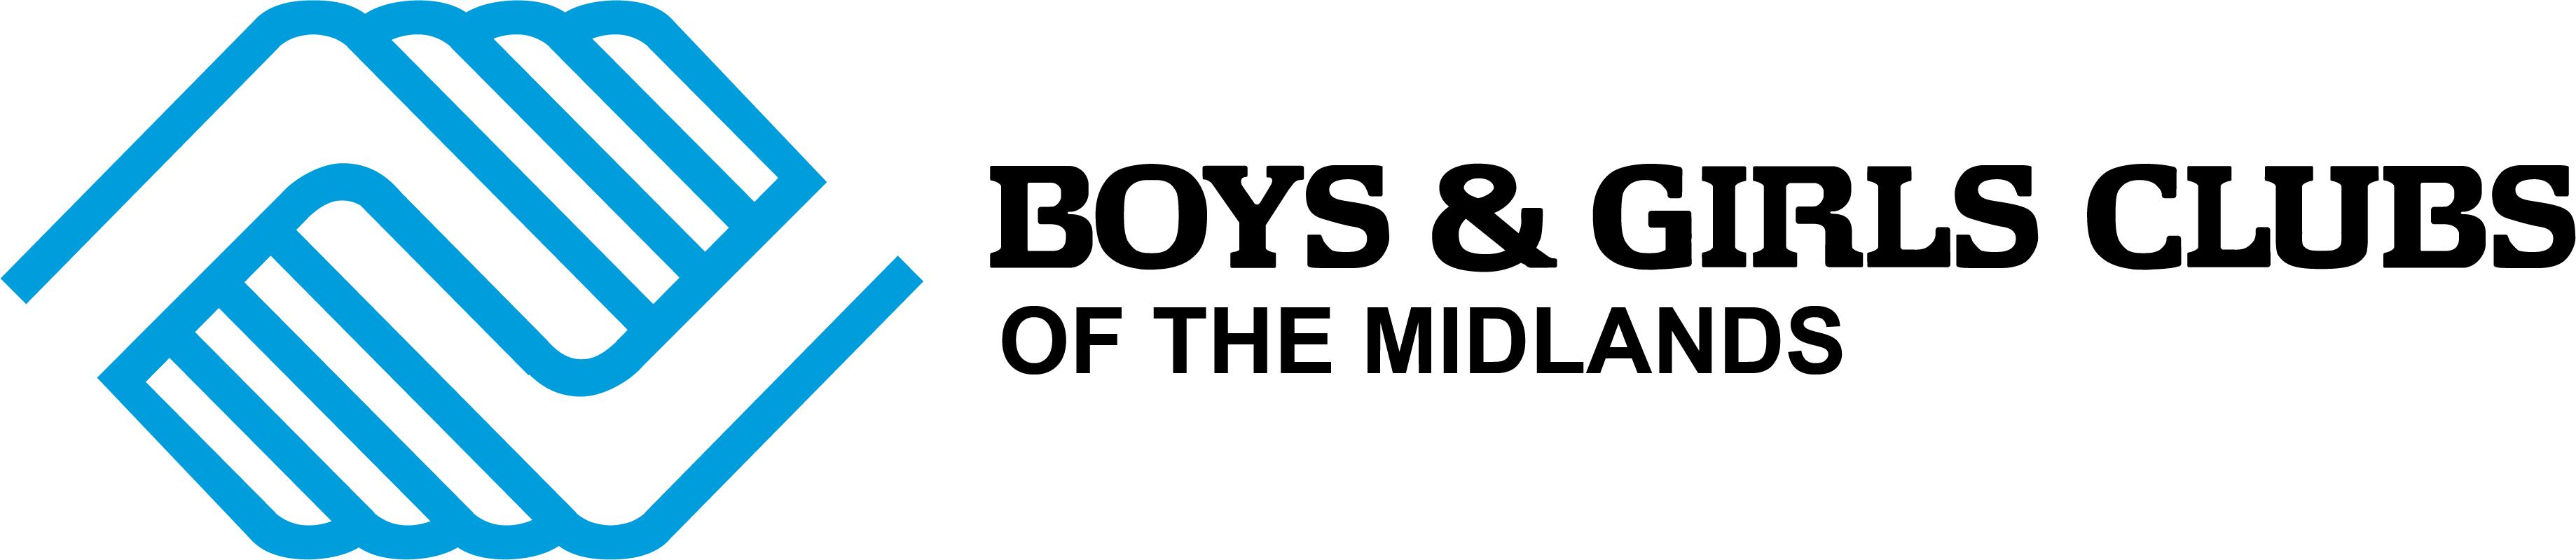 Boys & Girls Club of the Midlands